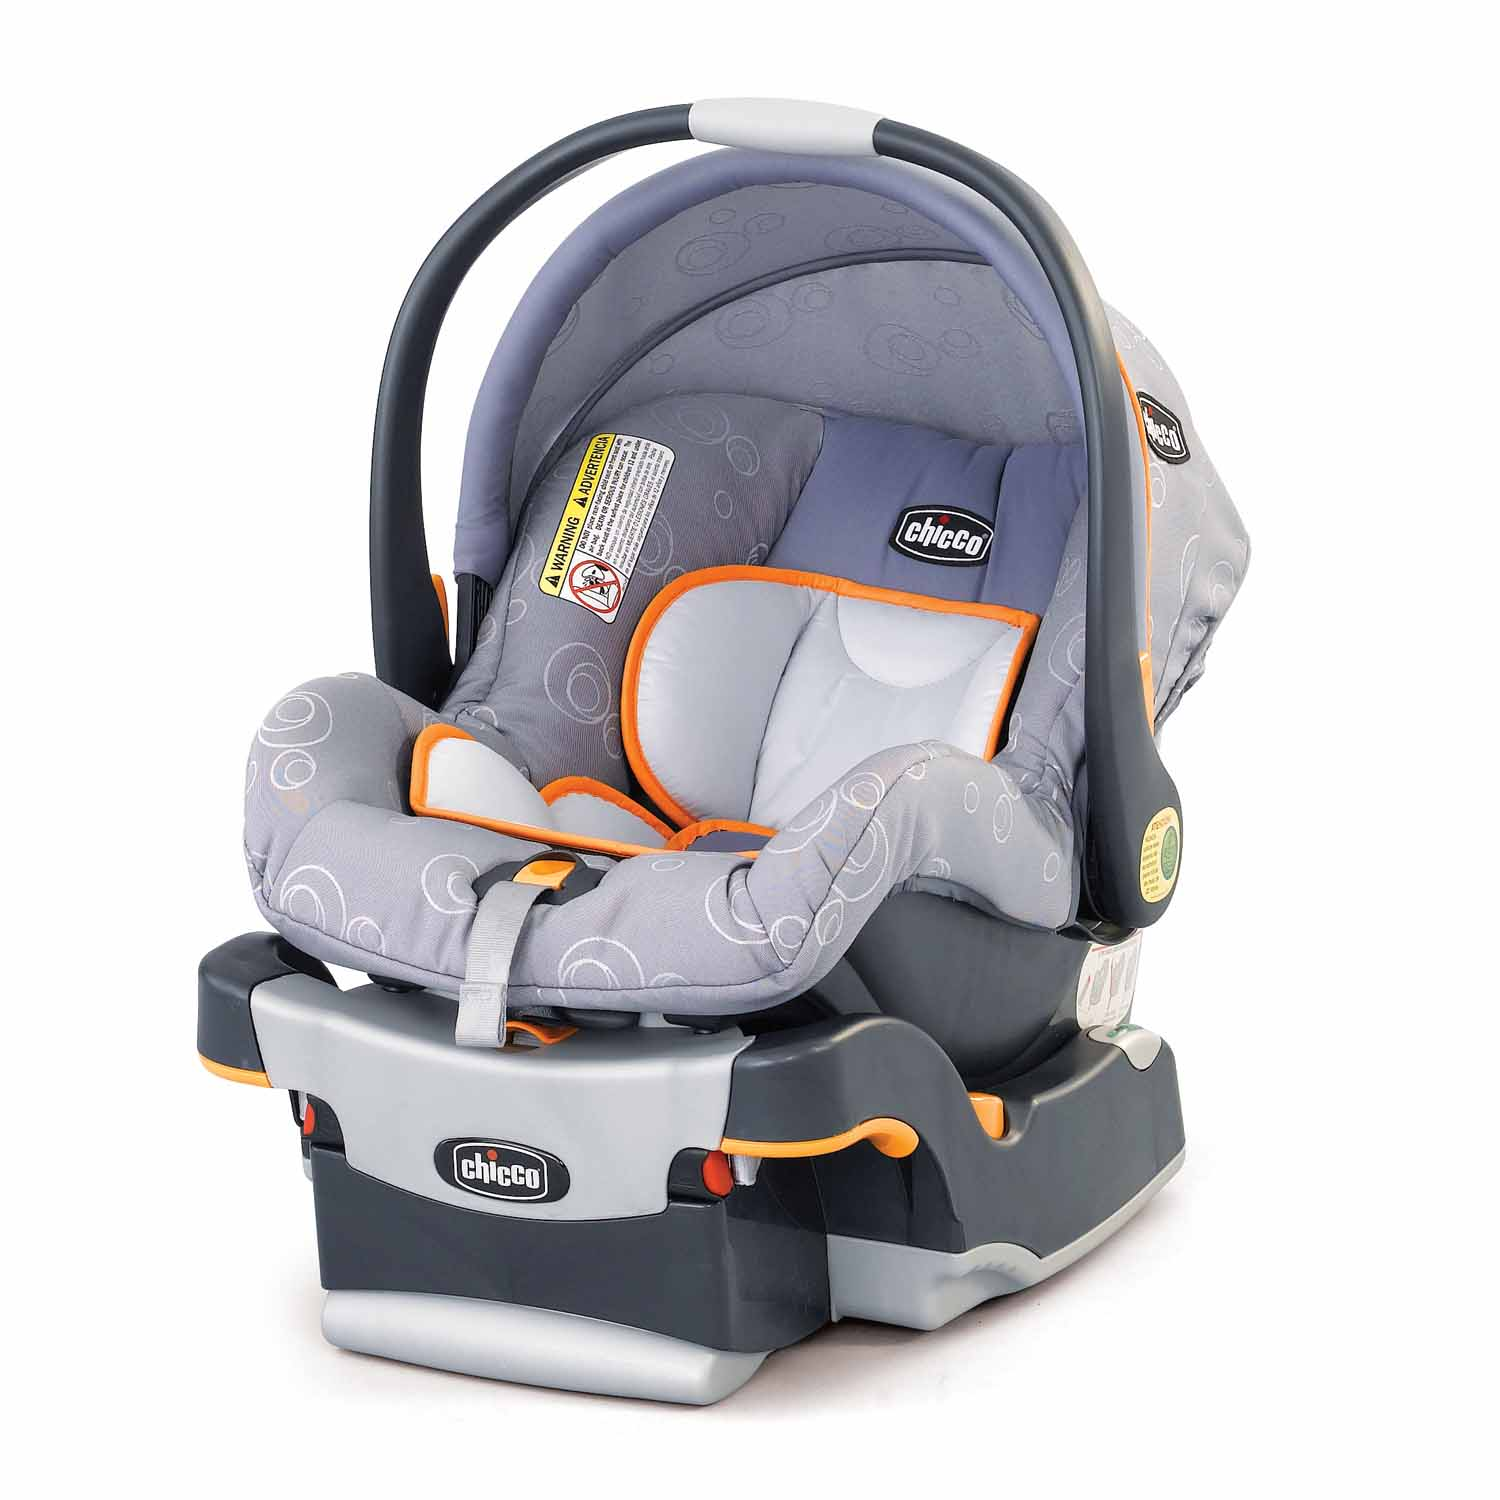 Graco Car Seats Babiesrus Autos Post